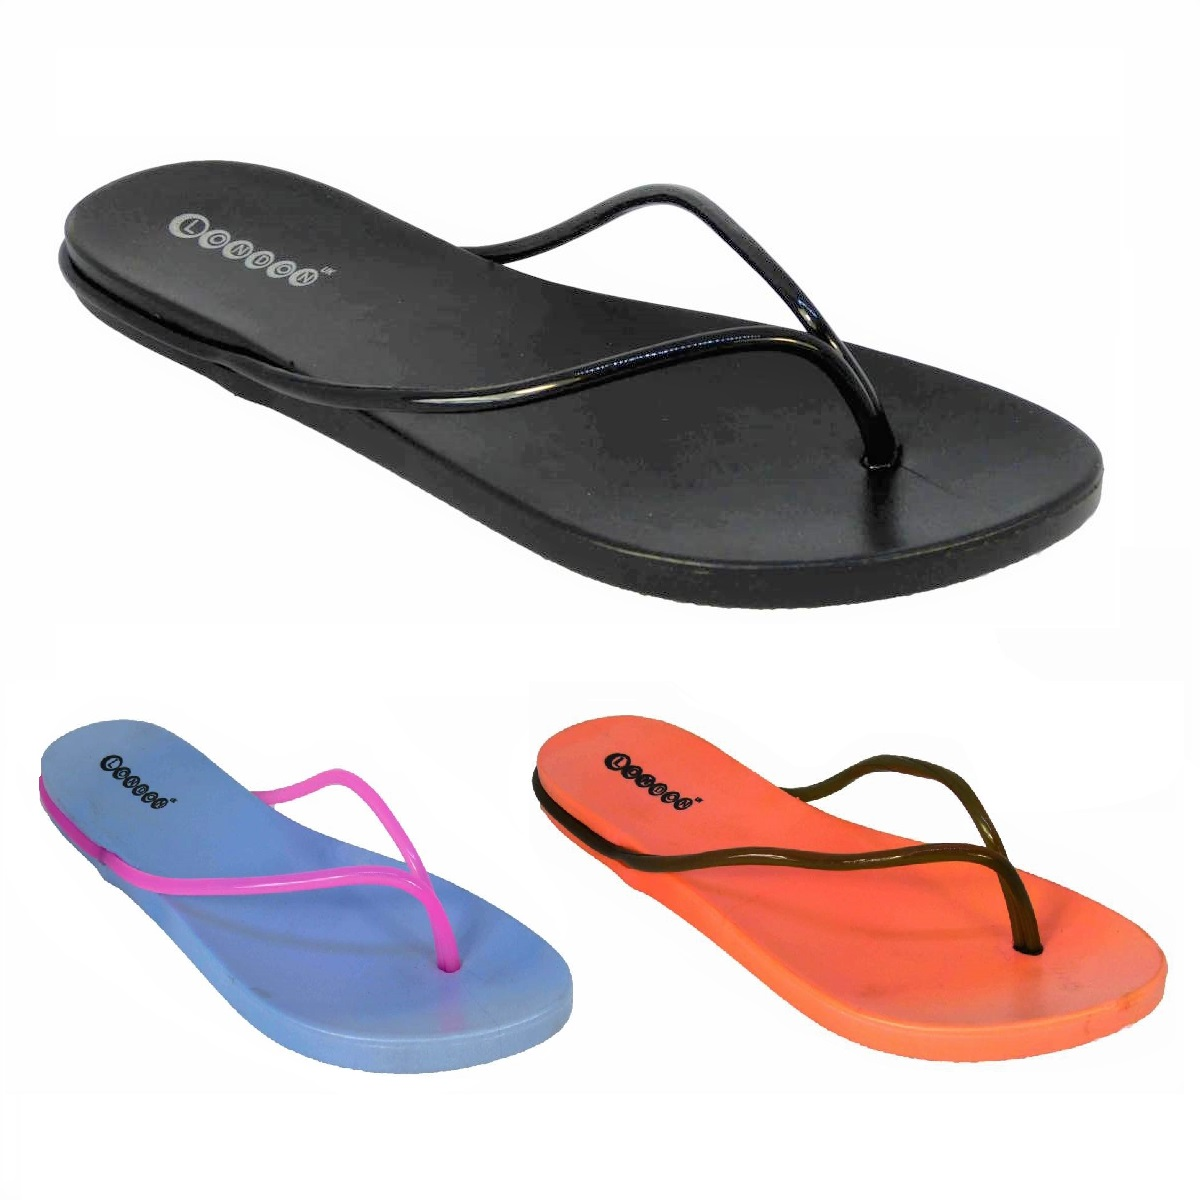 976bd4971 Details about NEW WOMENS LADIES JELLY SUMMER FLAT FLIP FLOP THONG SANDALS  BEACH SHOES SIZE 3-8